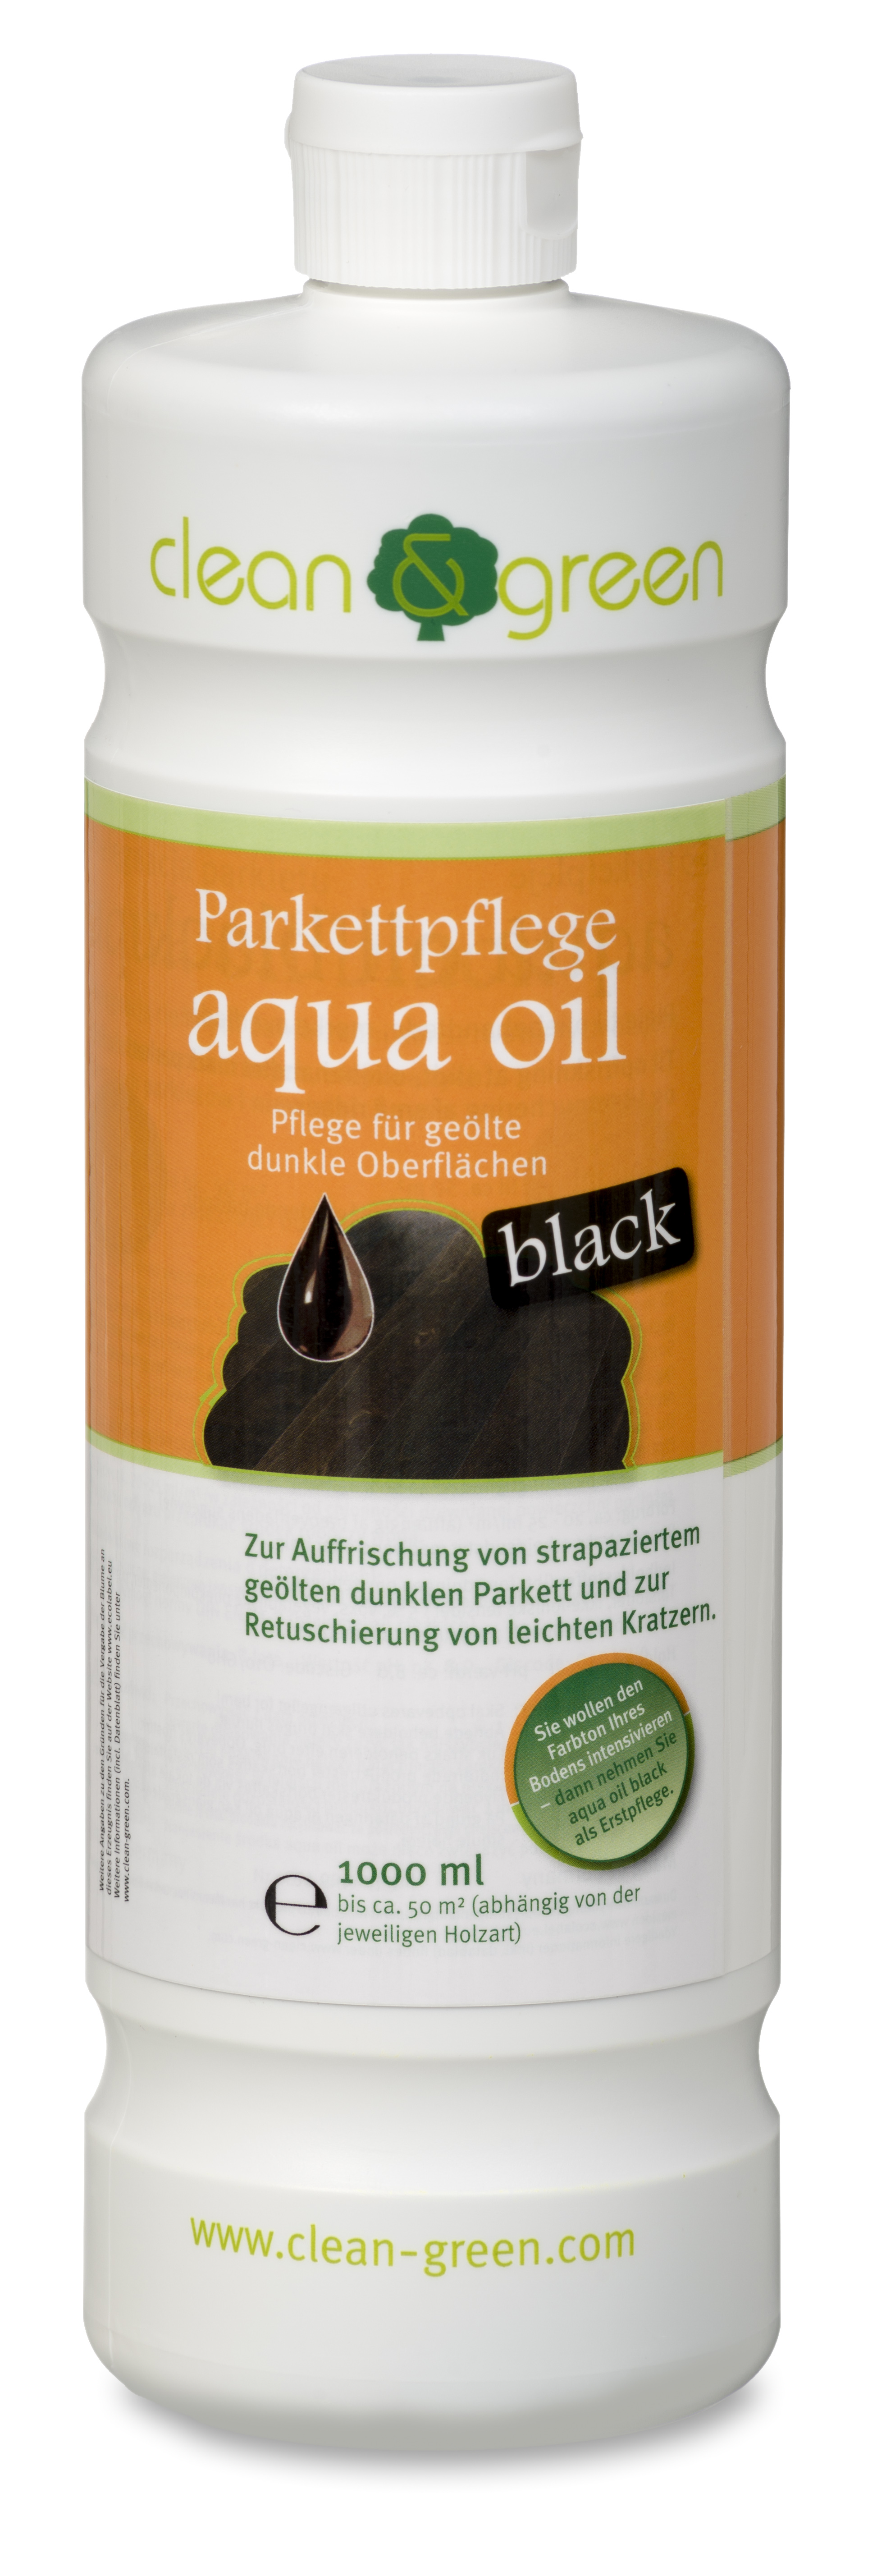 spezial parkettpflege aqua oil black f r ge lte schwarze oberfl chen clean green. Black Bedroom Furniture Sets. Home Design Ideas